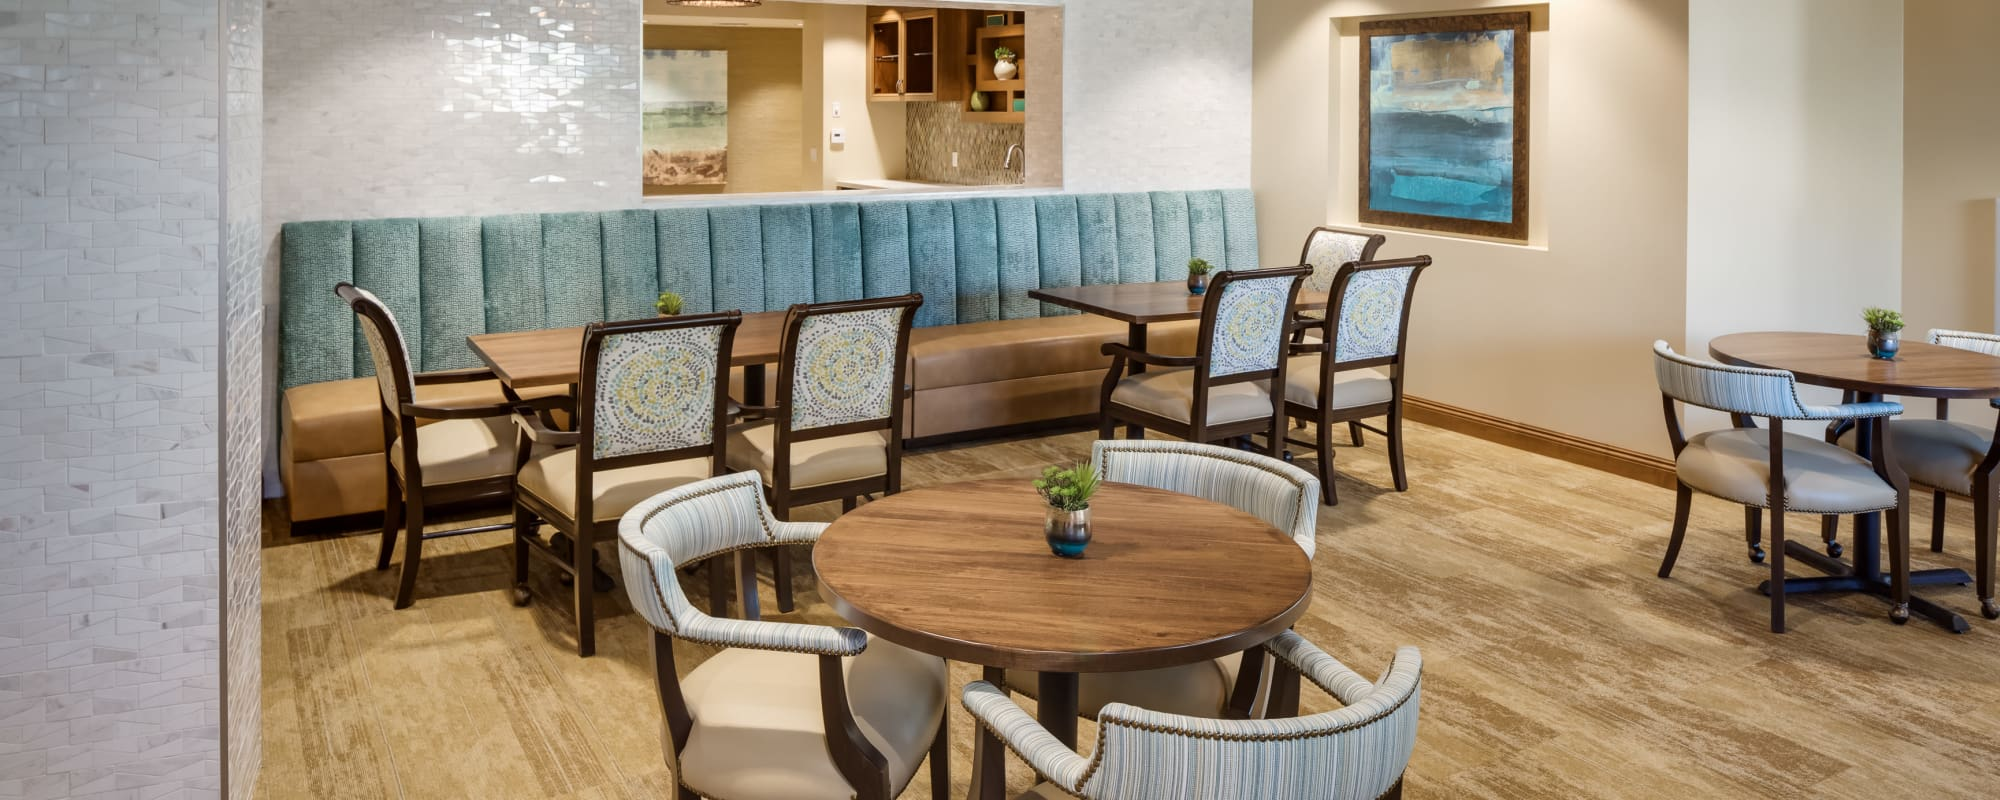 Common area for our residents at The Montera in La Mesa, California